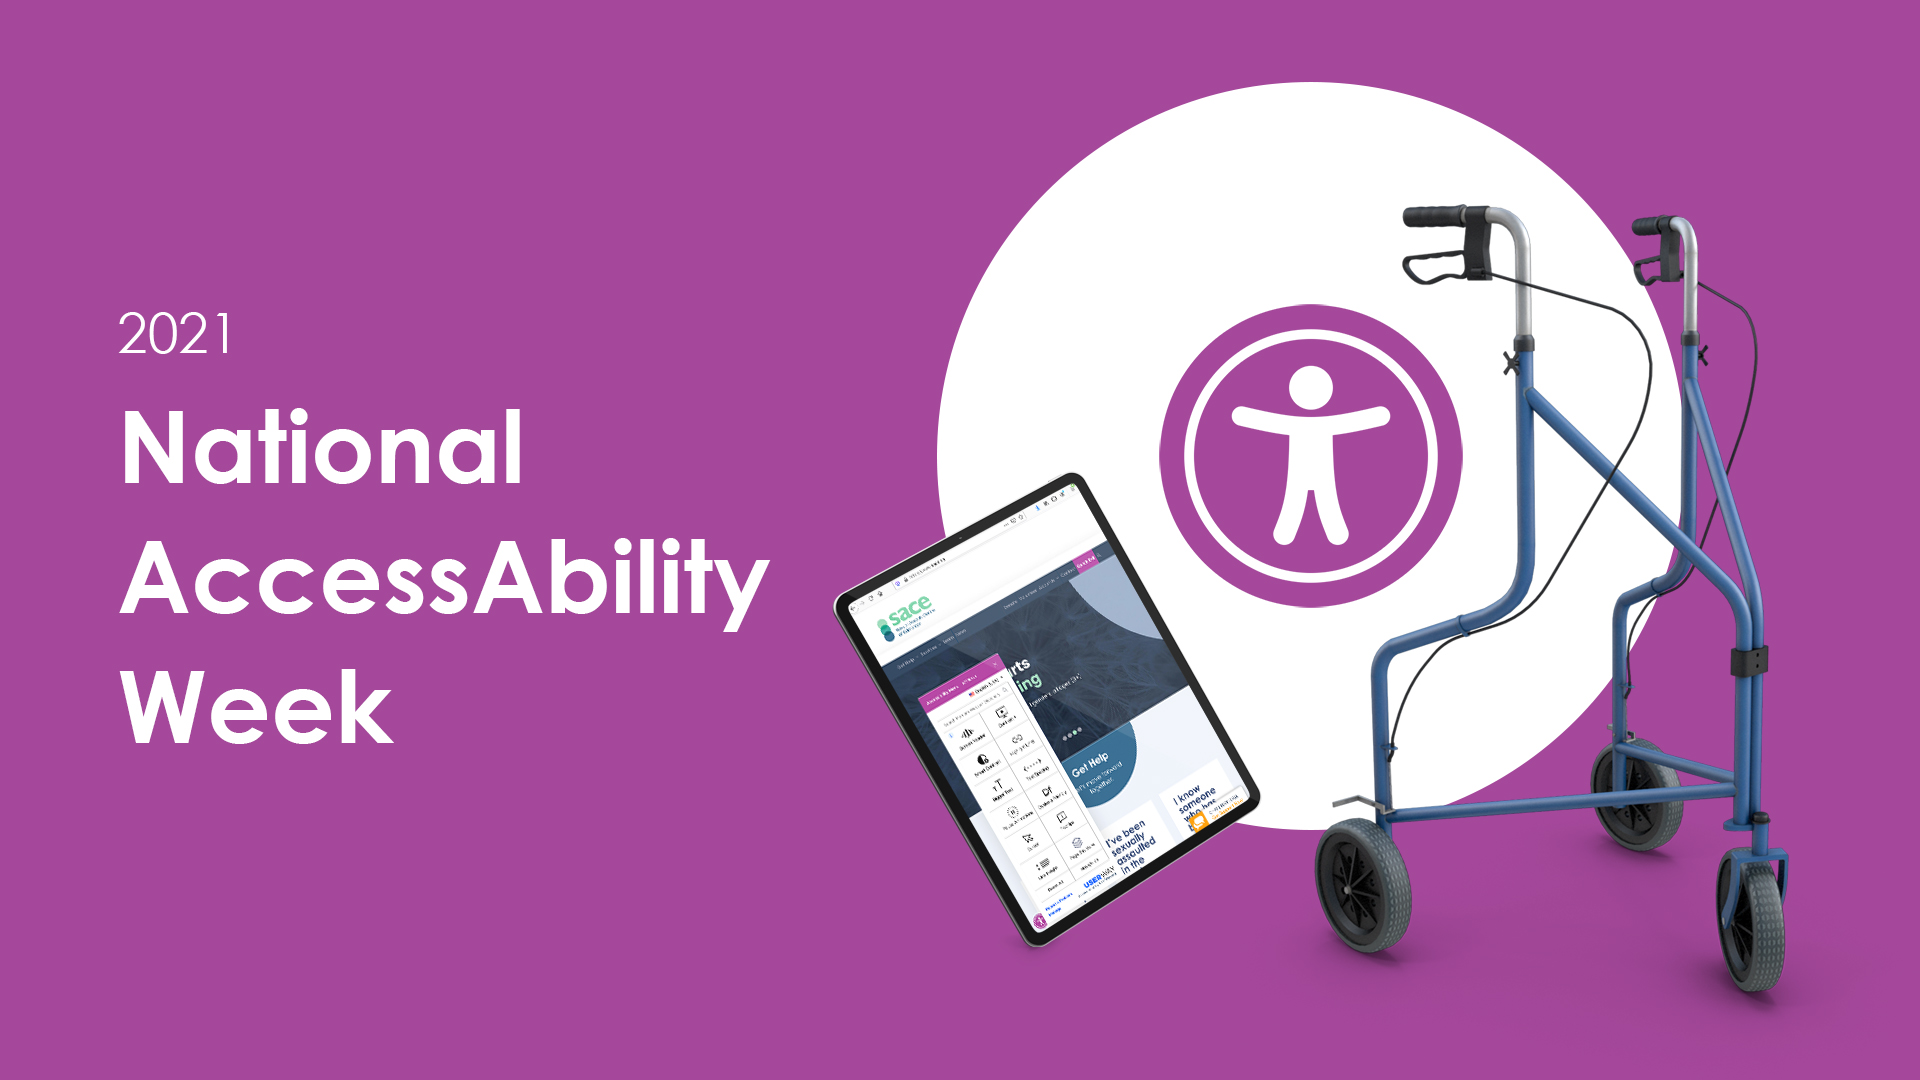 2021 National AccessAbility Week An IPad Displaying The SACE Website, UserWay Accessibility Plugin Magenta Icon And A Walker.